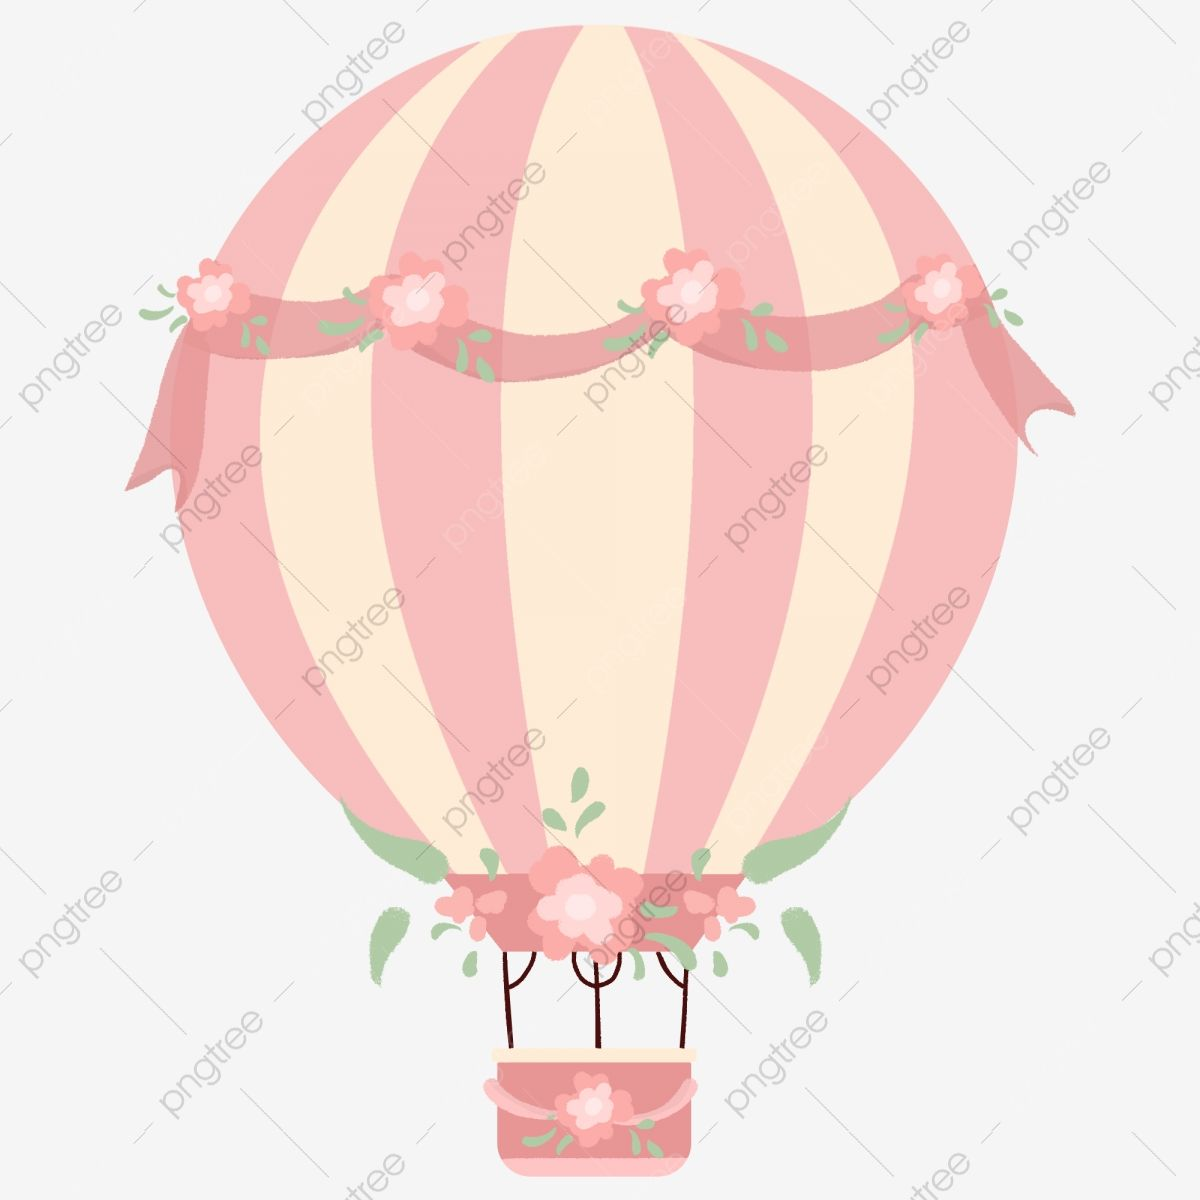 Small Fresh Floral Pink Romantic Hot Air Balloon Balloon Clipart Small Fresh Floral Png Transparent Clipart Image And Psd File For Free Download Hot Air Balloon Clipart Balloon Clipart Air Balloon